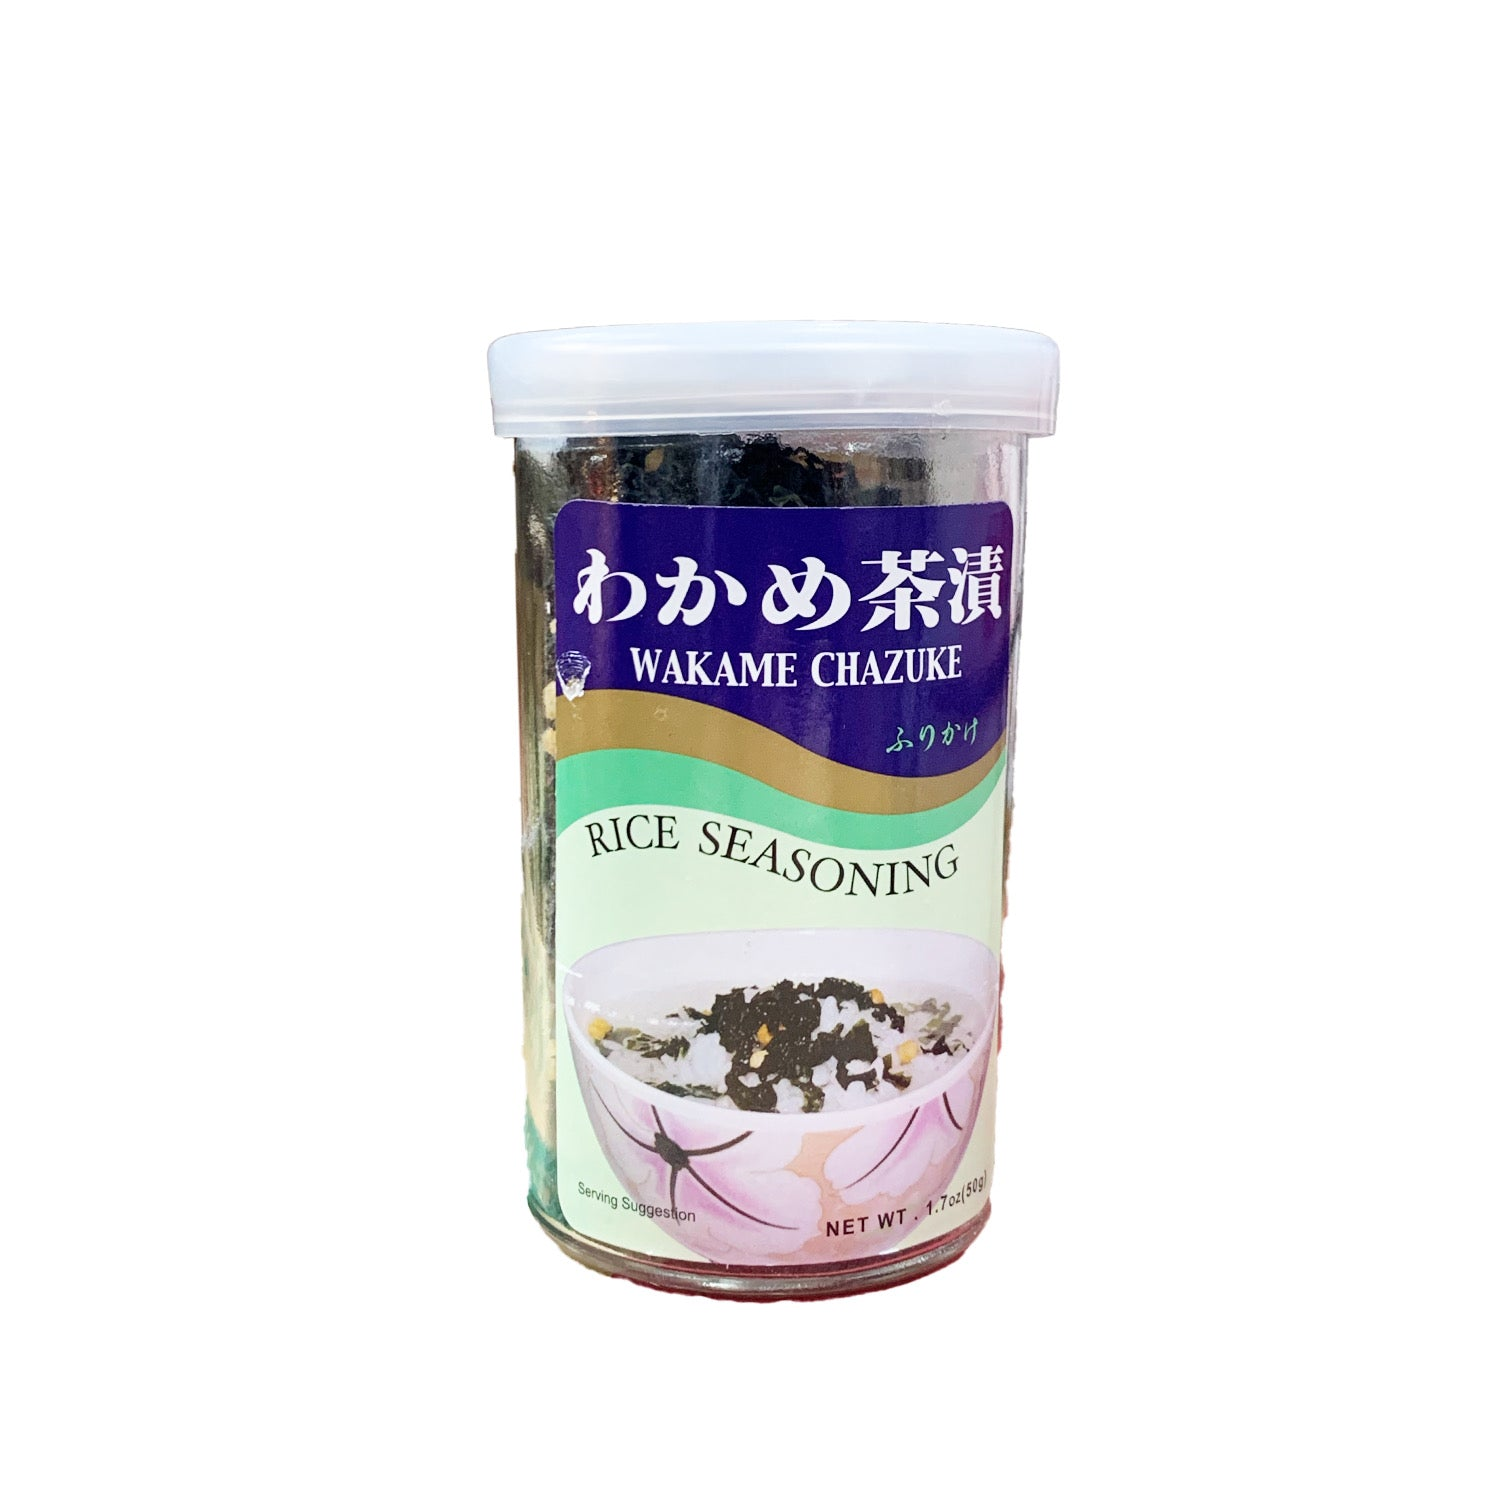 Ajishima Wakame Chazuke Rice Seasoning